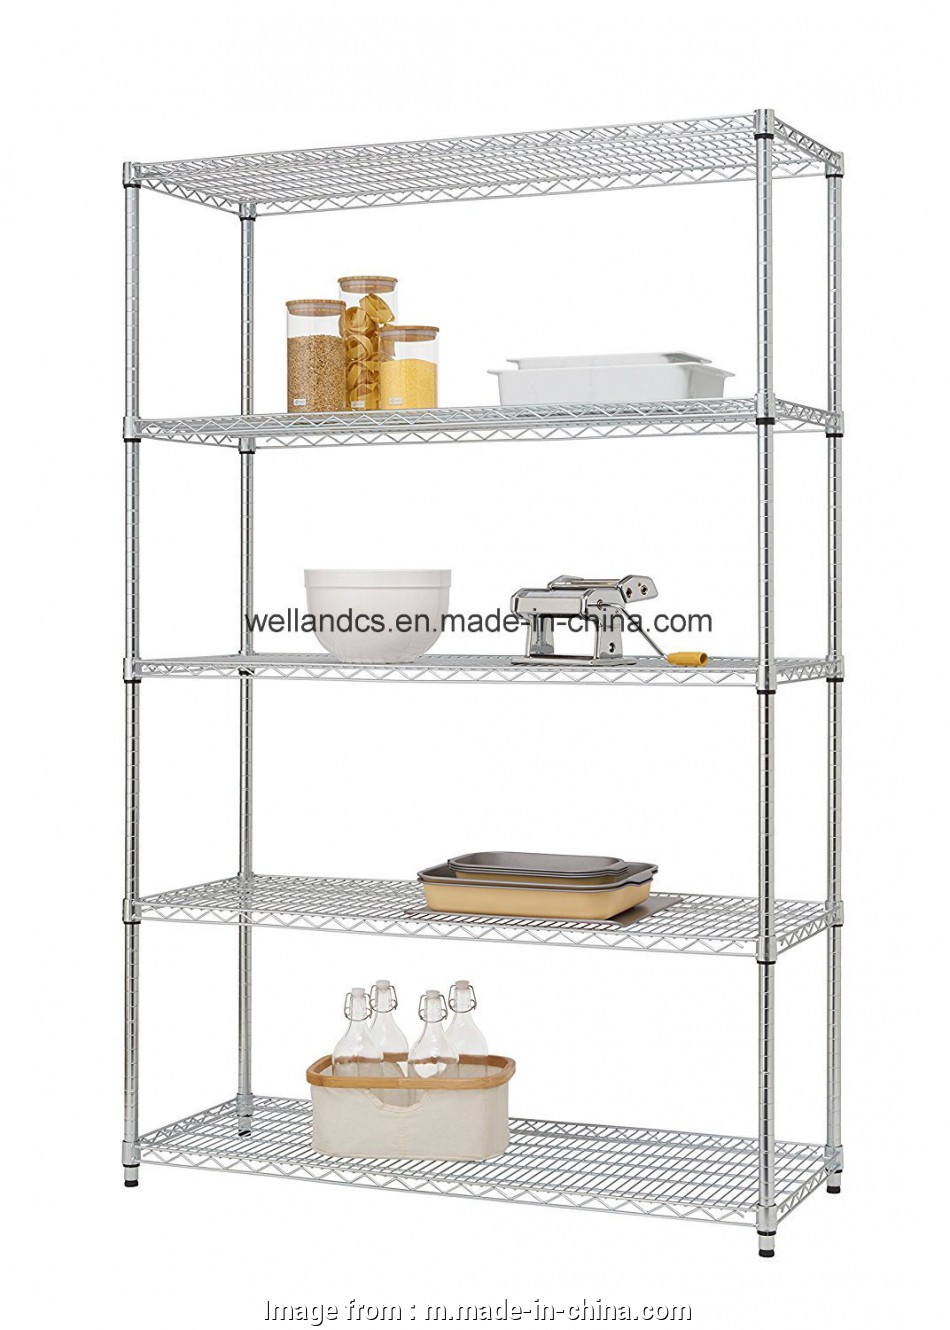 metal wire shelving accessories Basic 5 Shelf Heavy Duty, Chrome Steel Storage Wire Shelving 10 Best Metal Wire Shelving Accessories Ideas